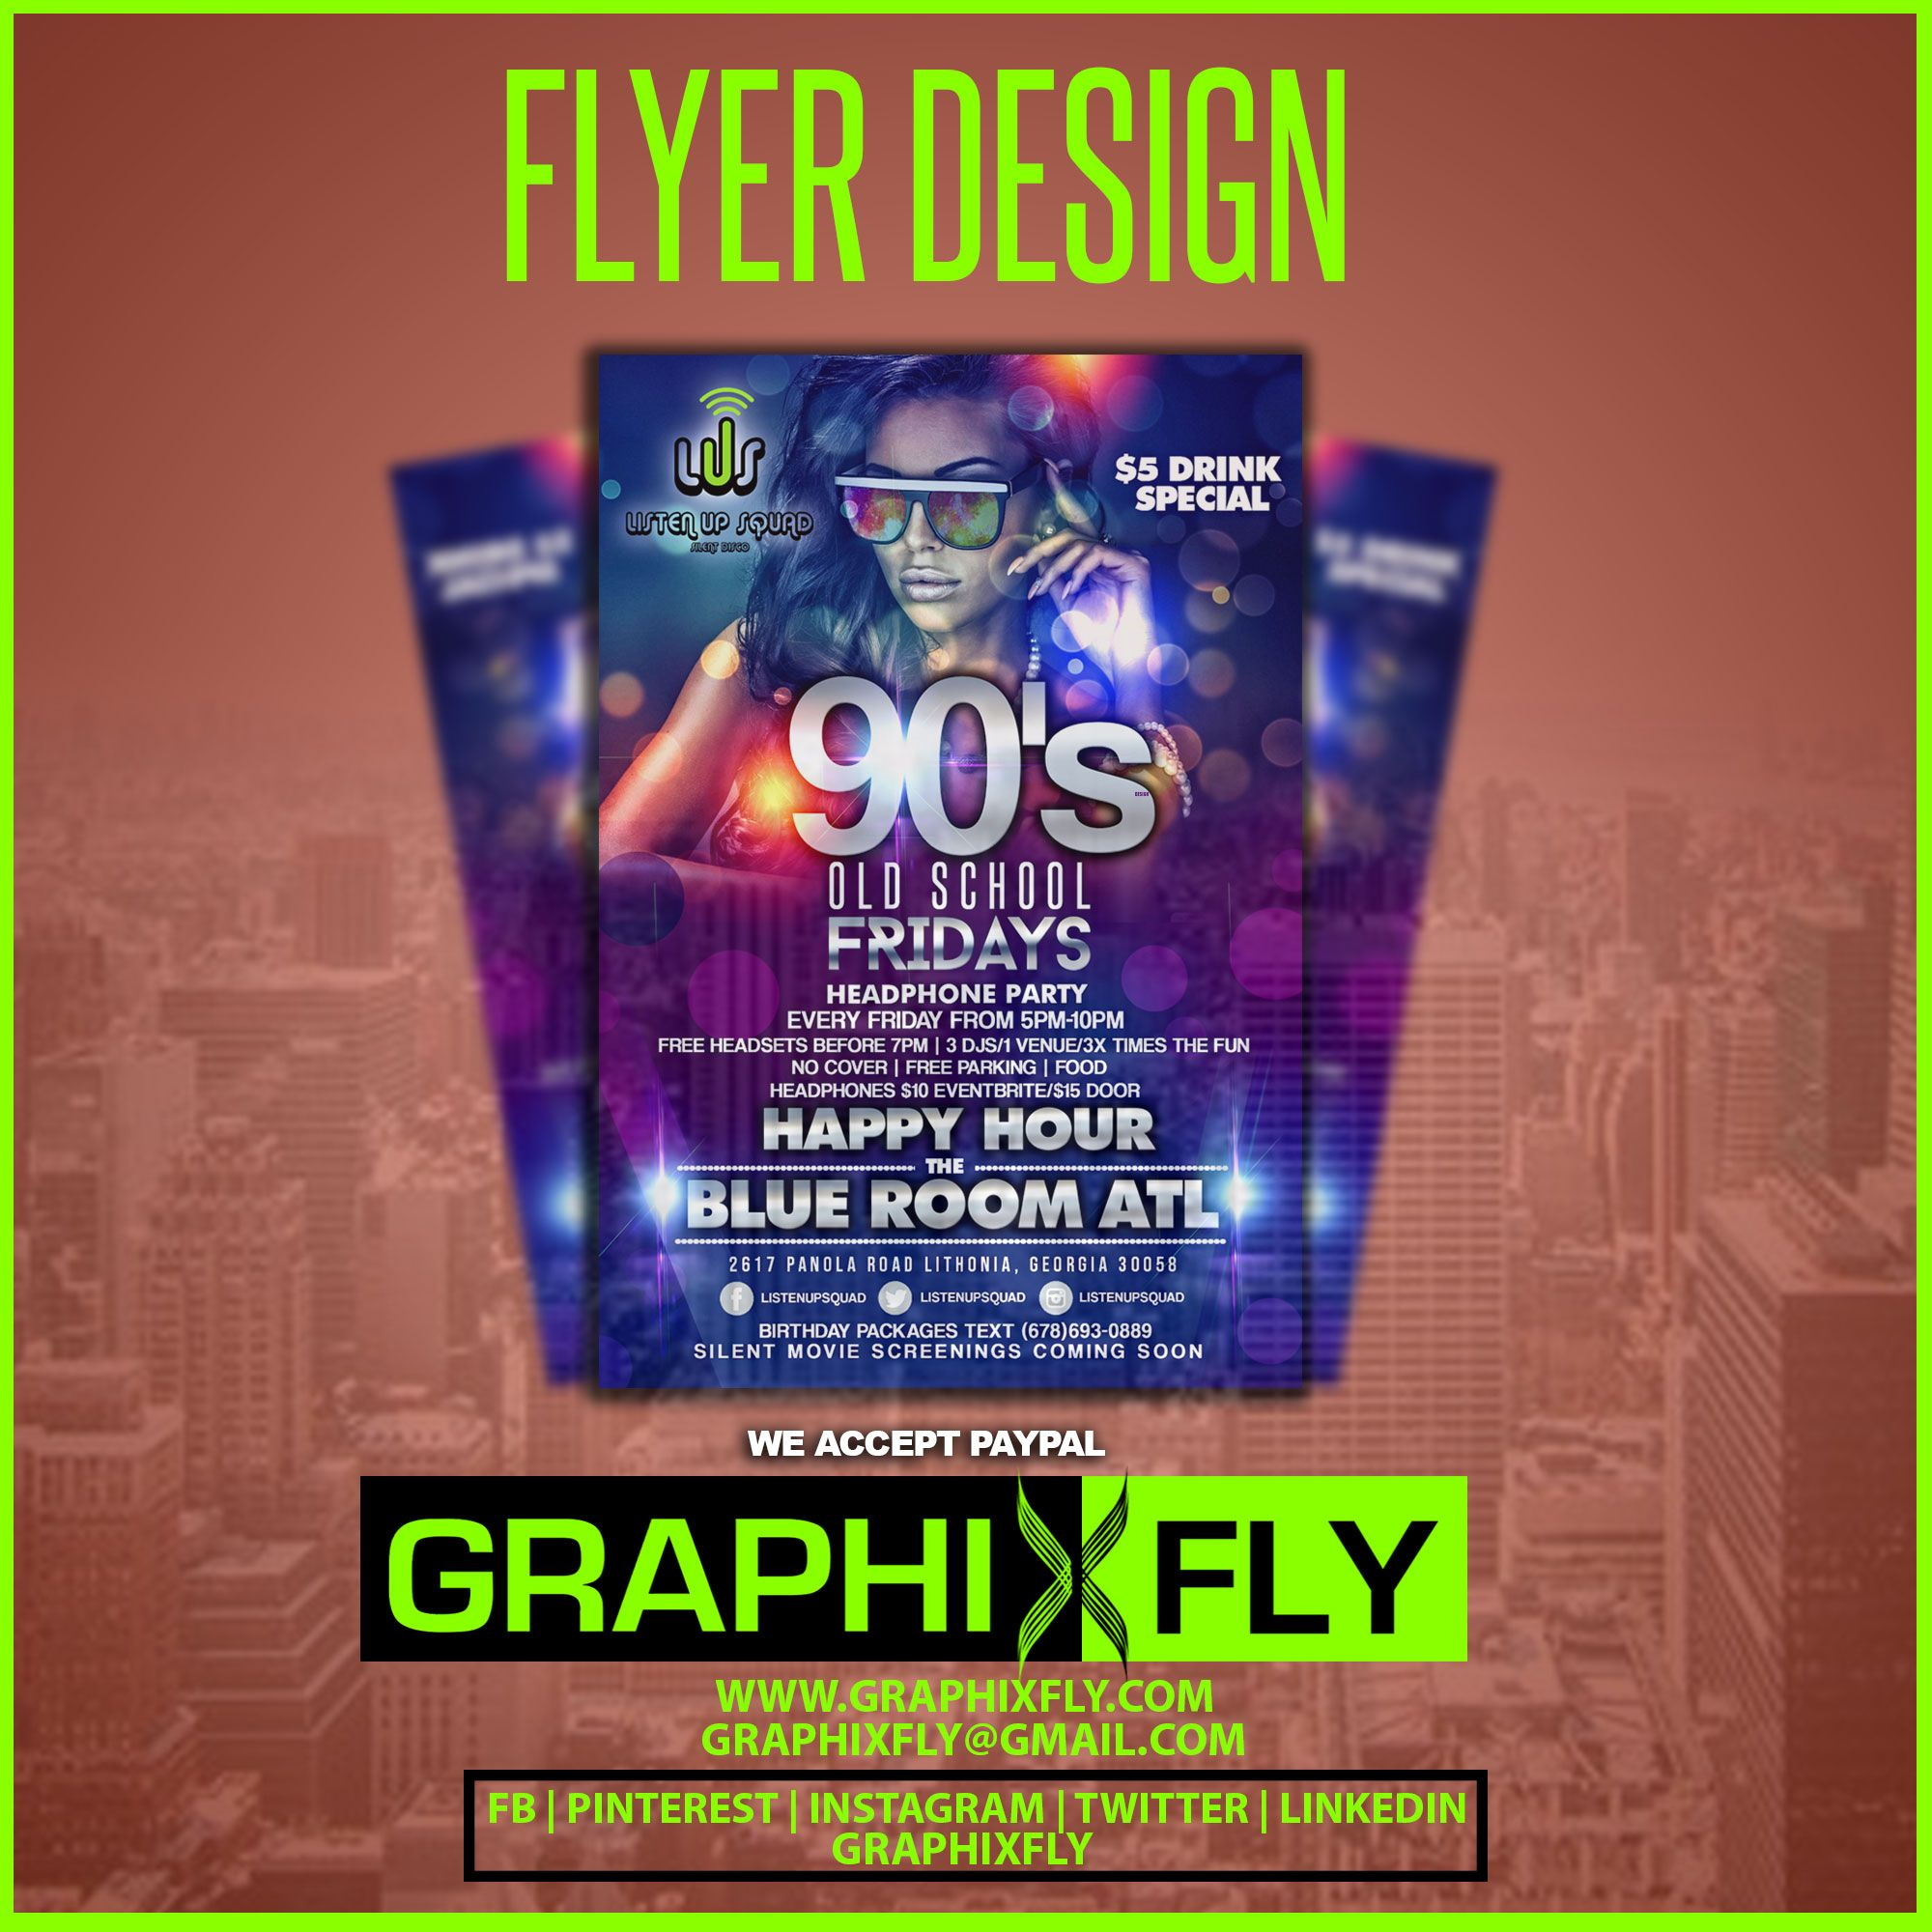 Top Flyer of the day!! 90s Old School Fridays Flyer designs